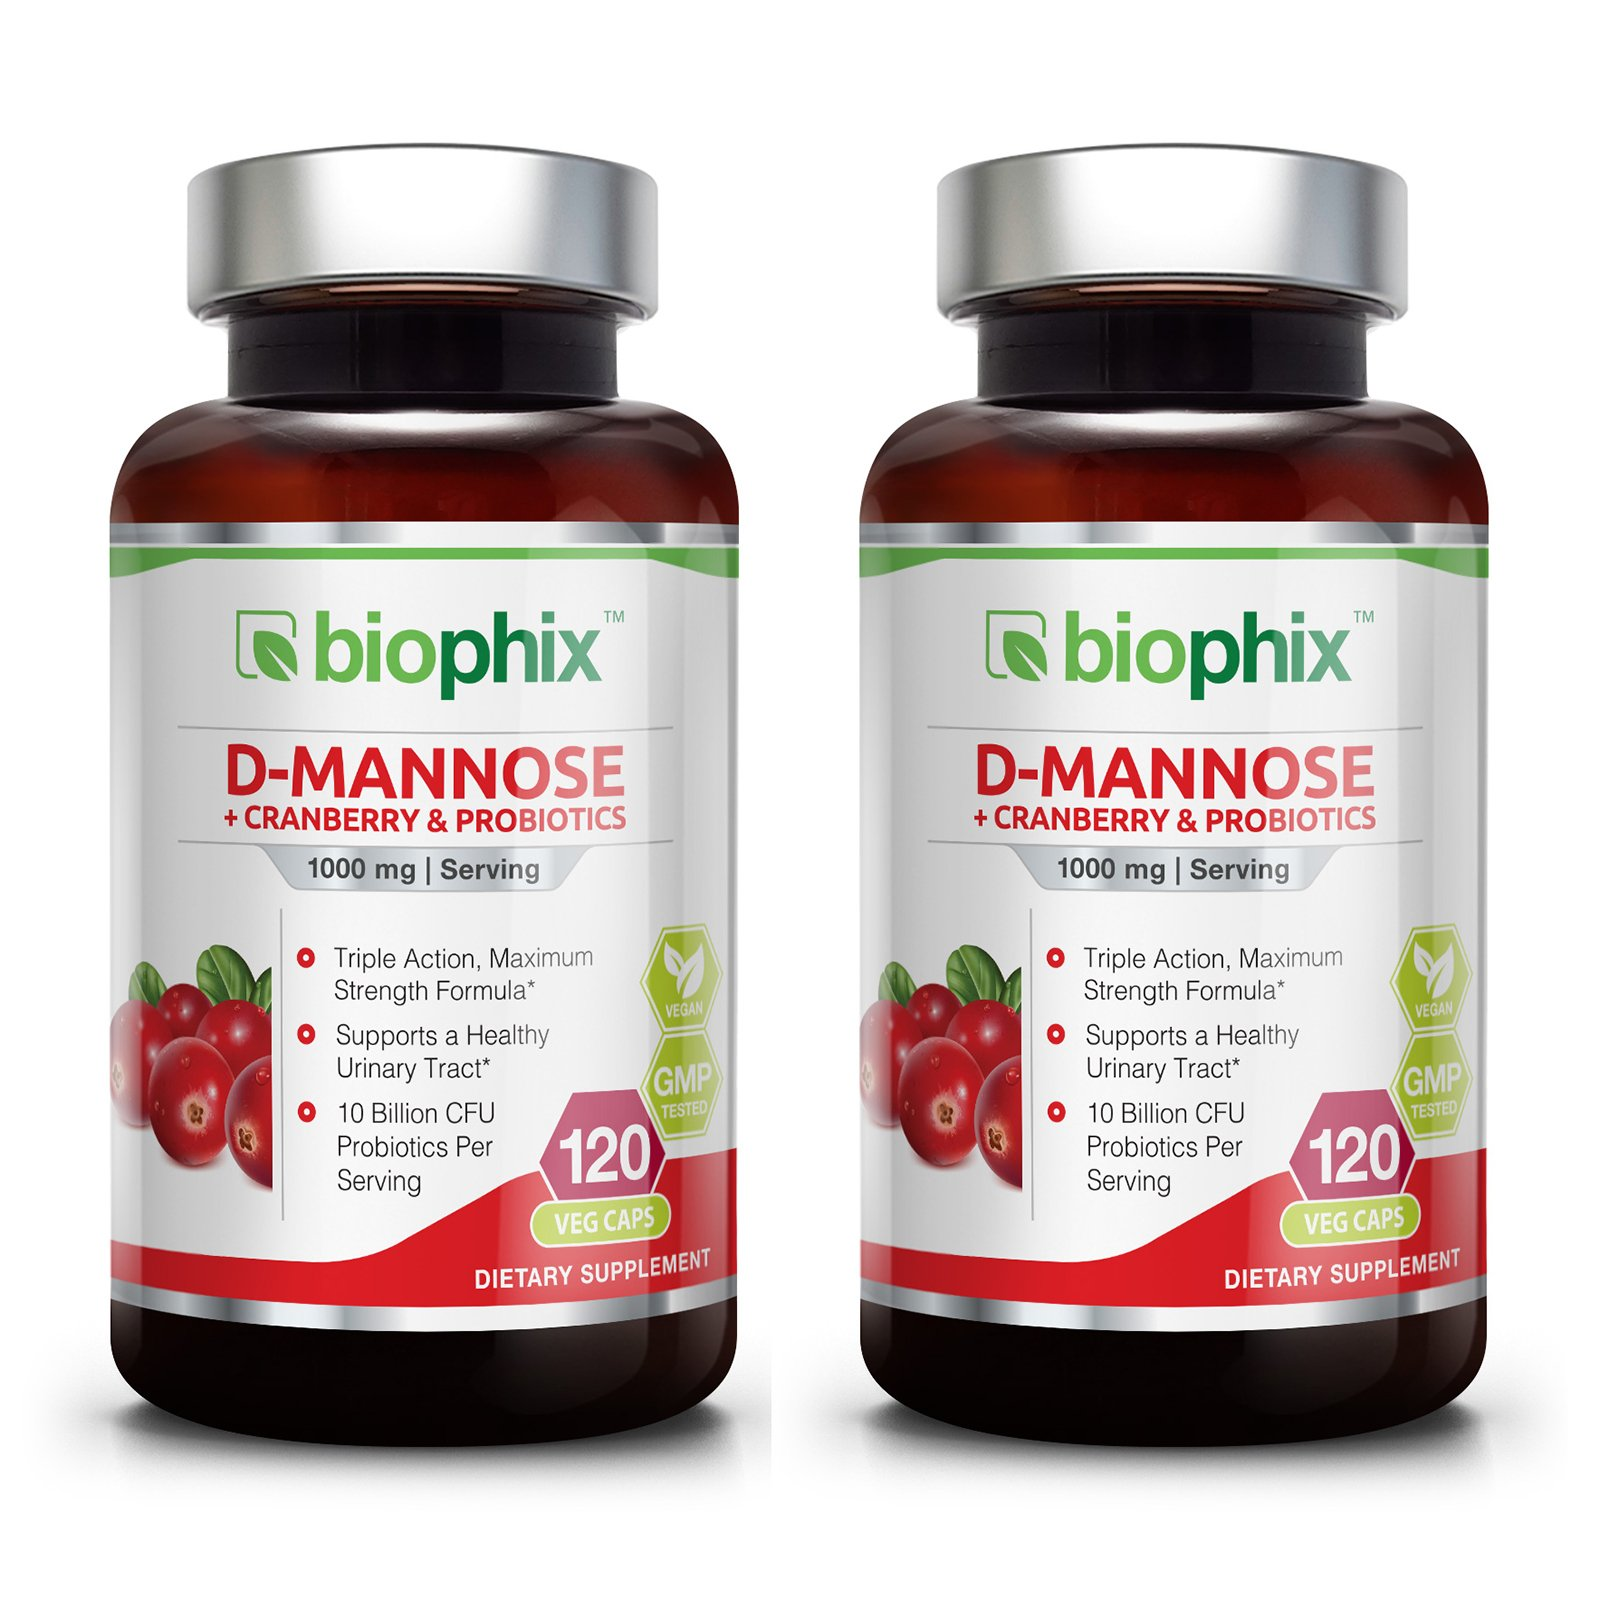 D-Mannose Plus Cranberry and Probiotics 1000 mg 120 Vcaps 2 Pack - Urinary Tract Health | Bladder Infection | Support UTI Prevention | Digestive Health by biophix